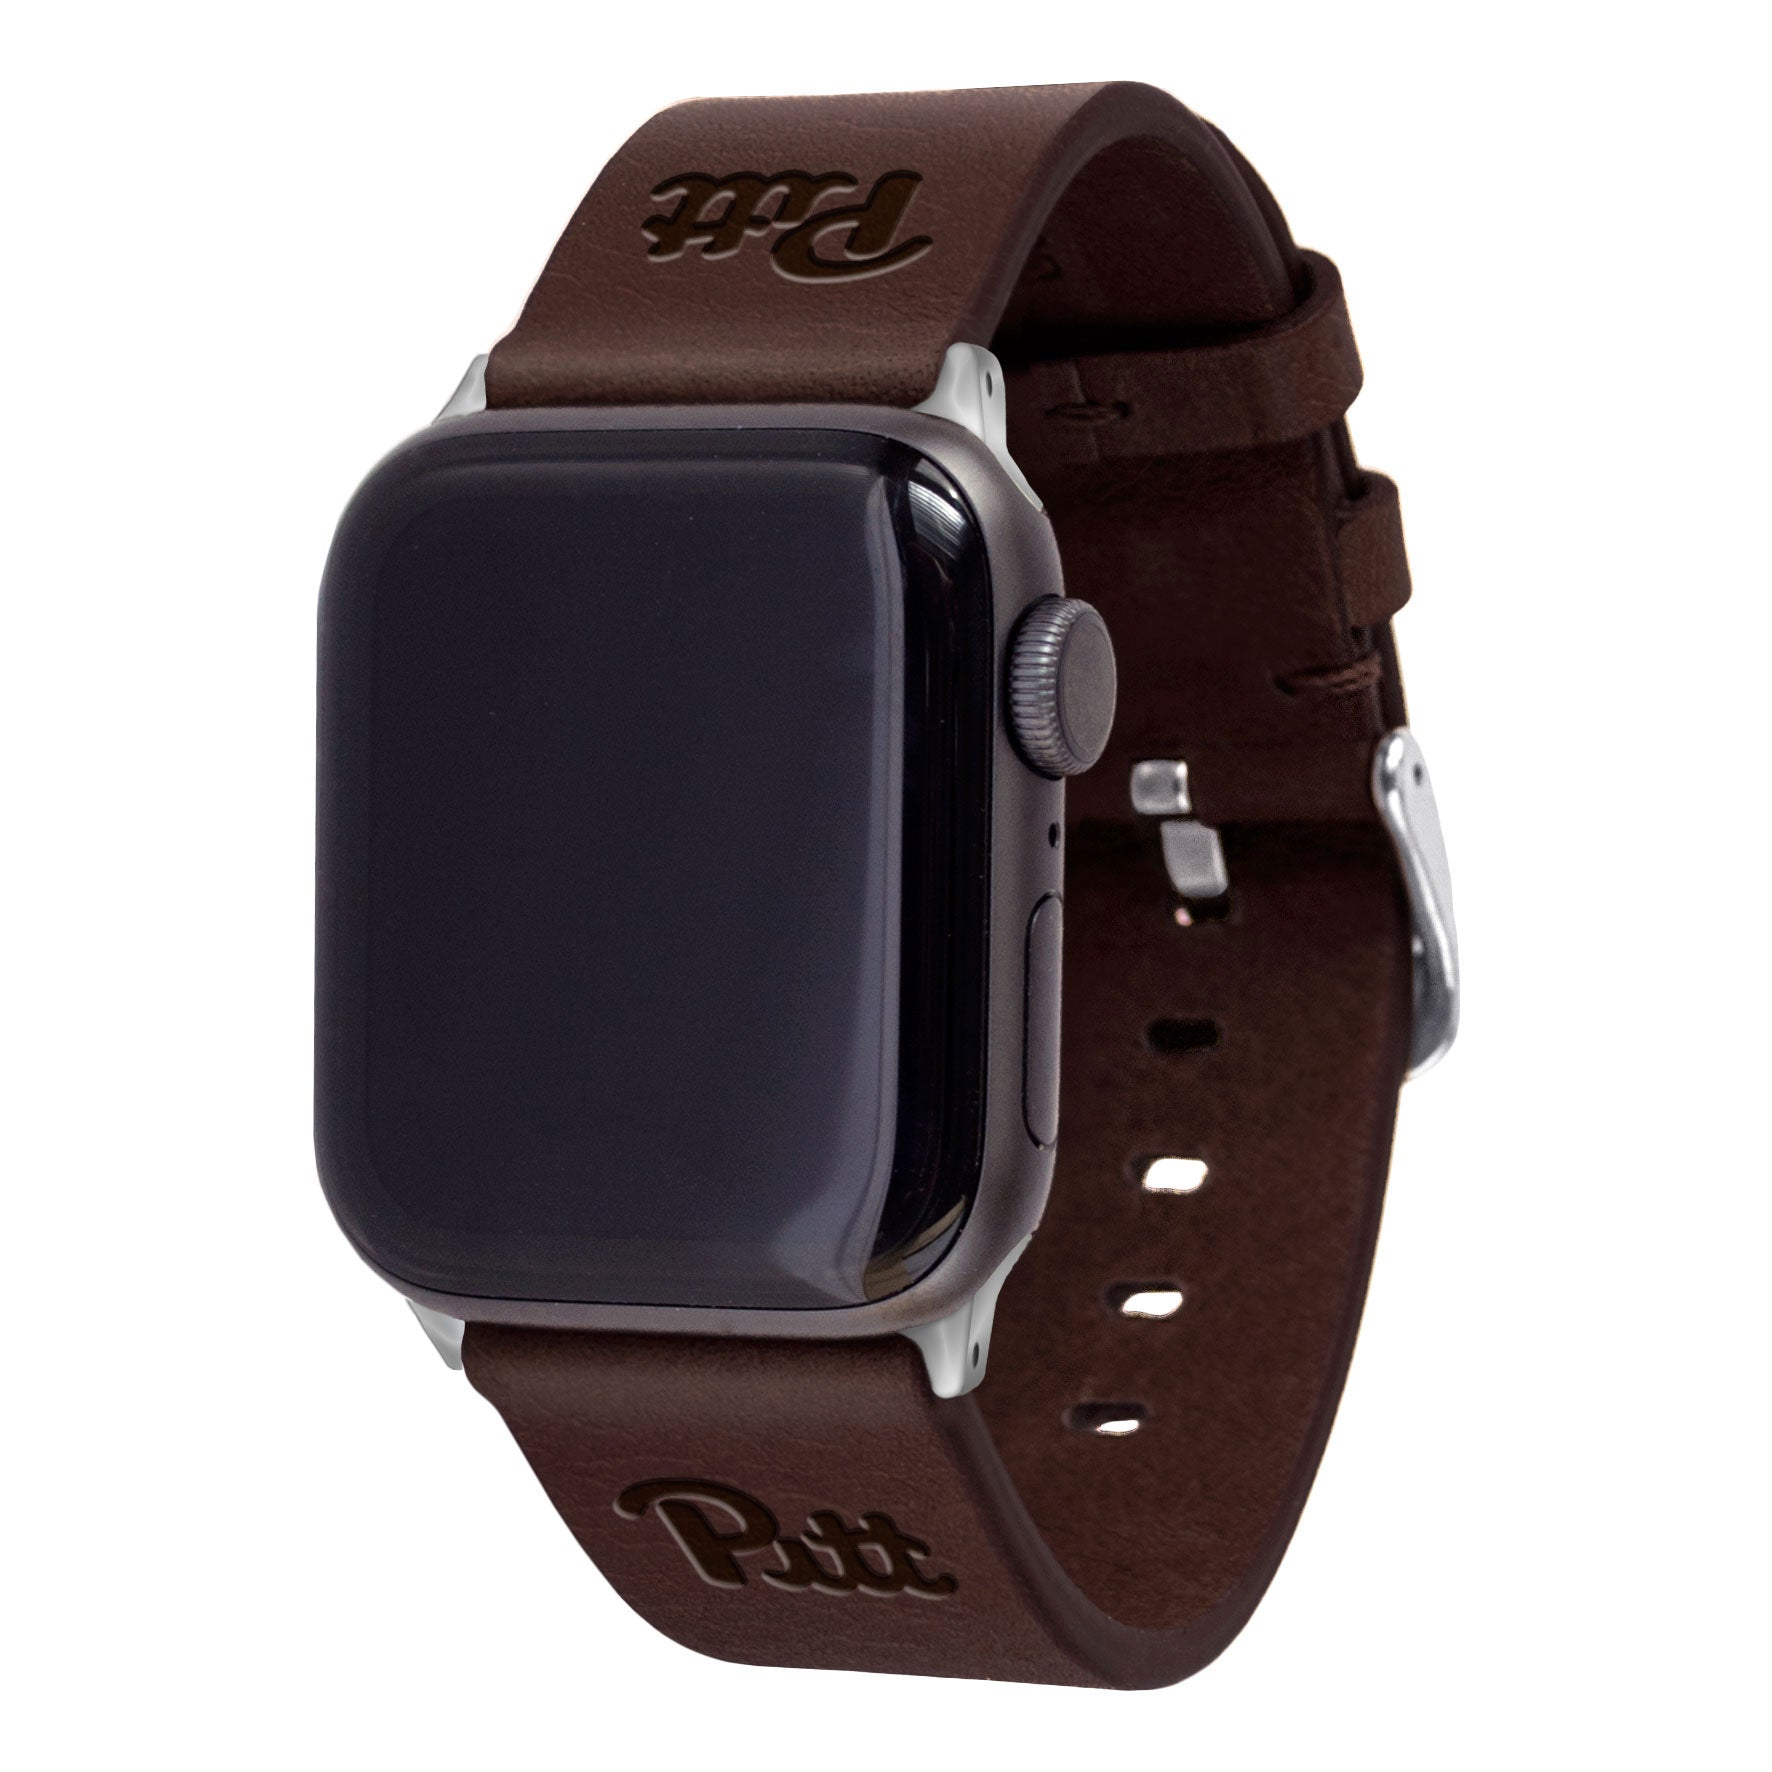 Pittsburgh Panthers Leather Apple Watch Band - Affinity Bands